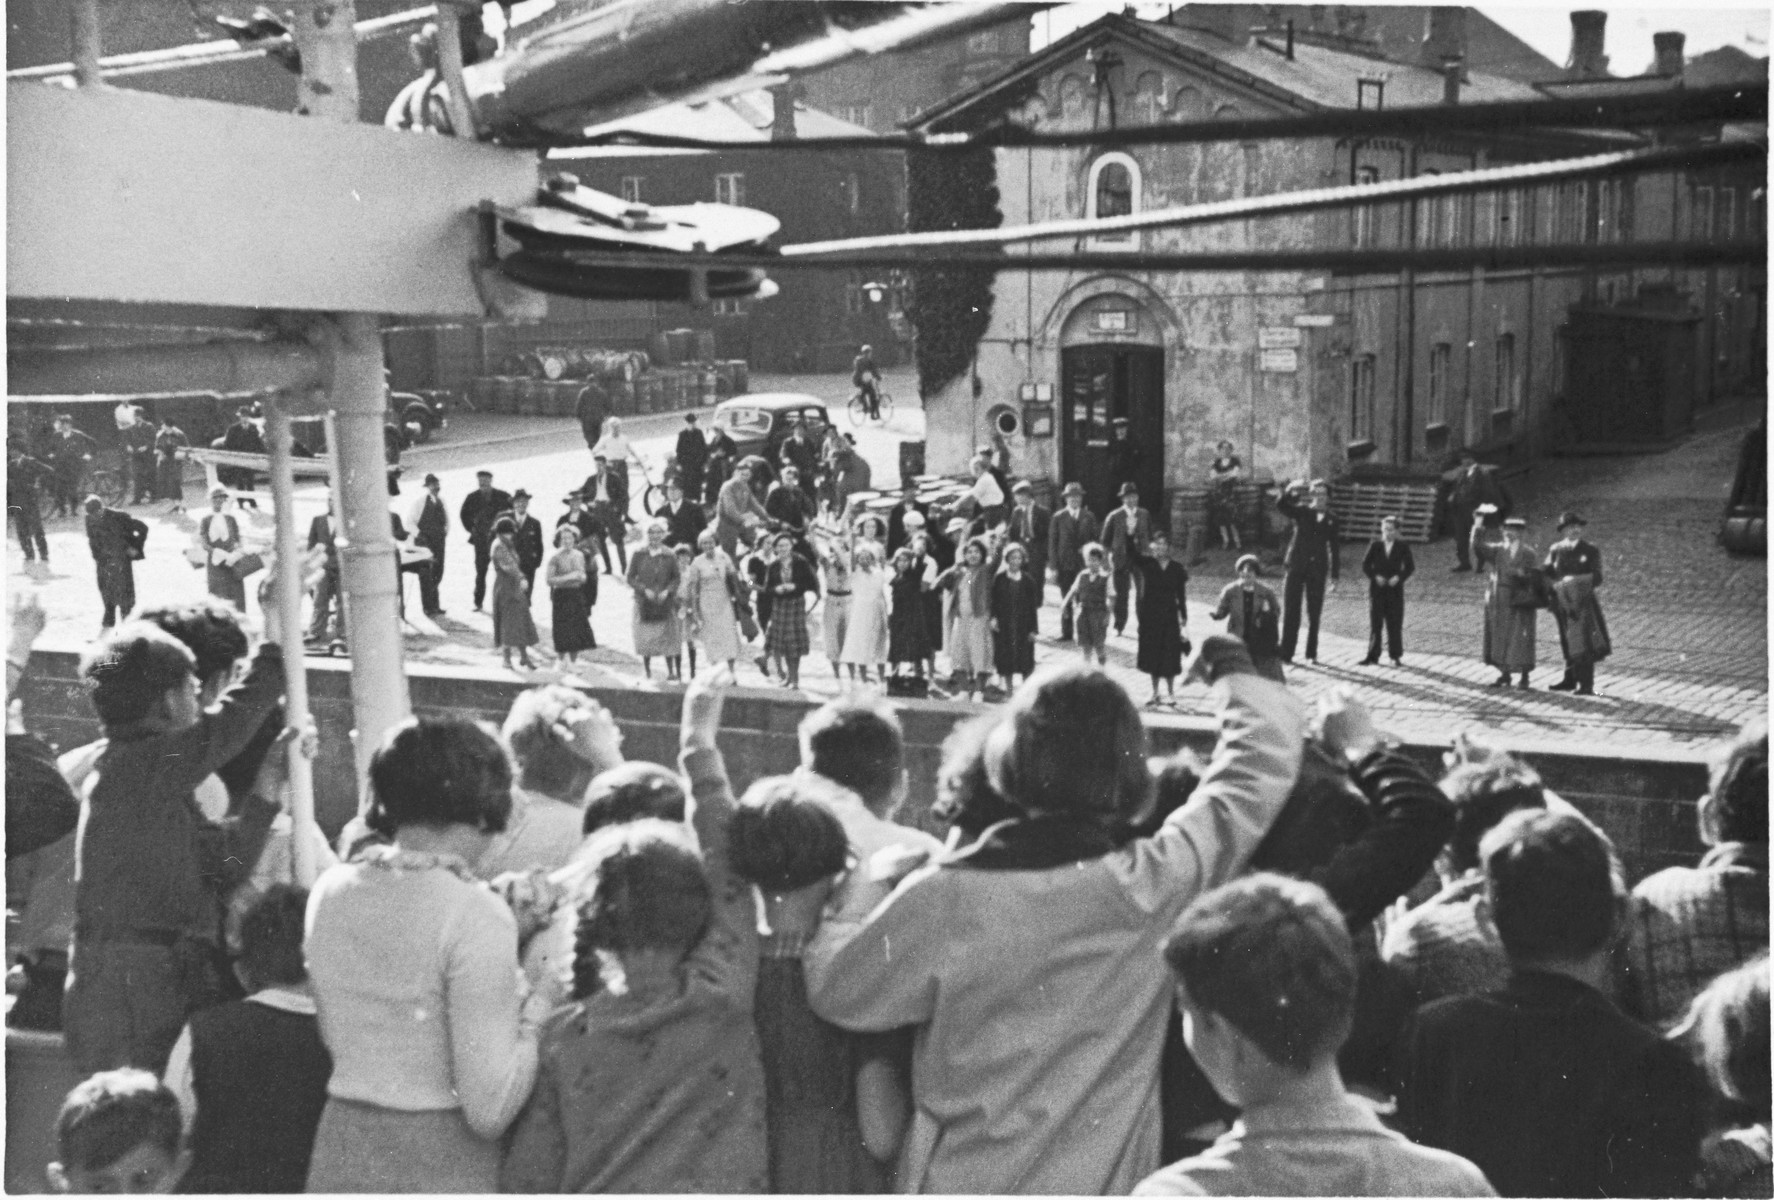 A group of Jewish children from Germany wave to their Danish hosts from the deck of the ship that is taking them home after their stay at a Kinderlager [children's recreational summer camp] in Horserod, Denmark.    In 1935-36 Norbert Wollheim was involved in organizing groups of German Jewish youth to attend a summer camp in Denmark.